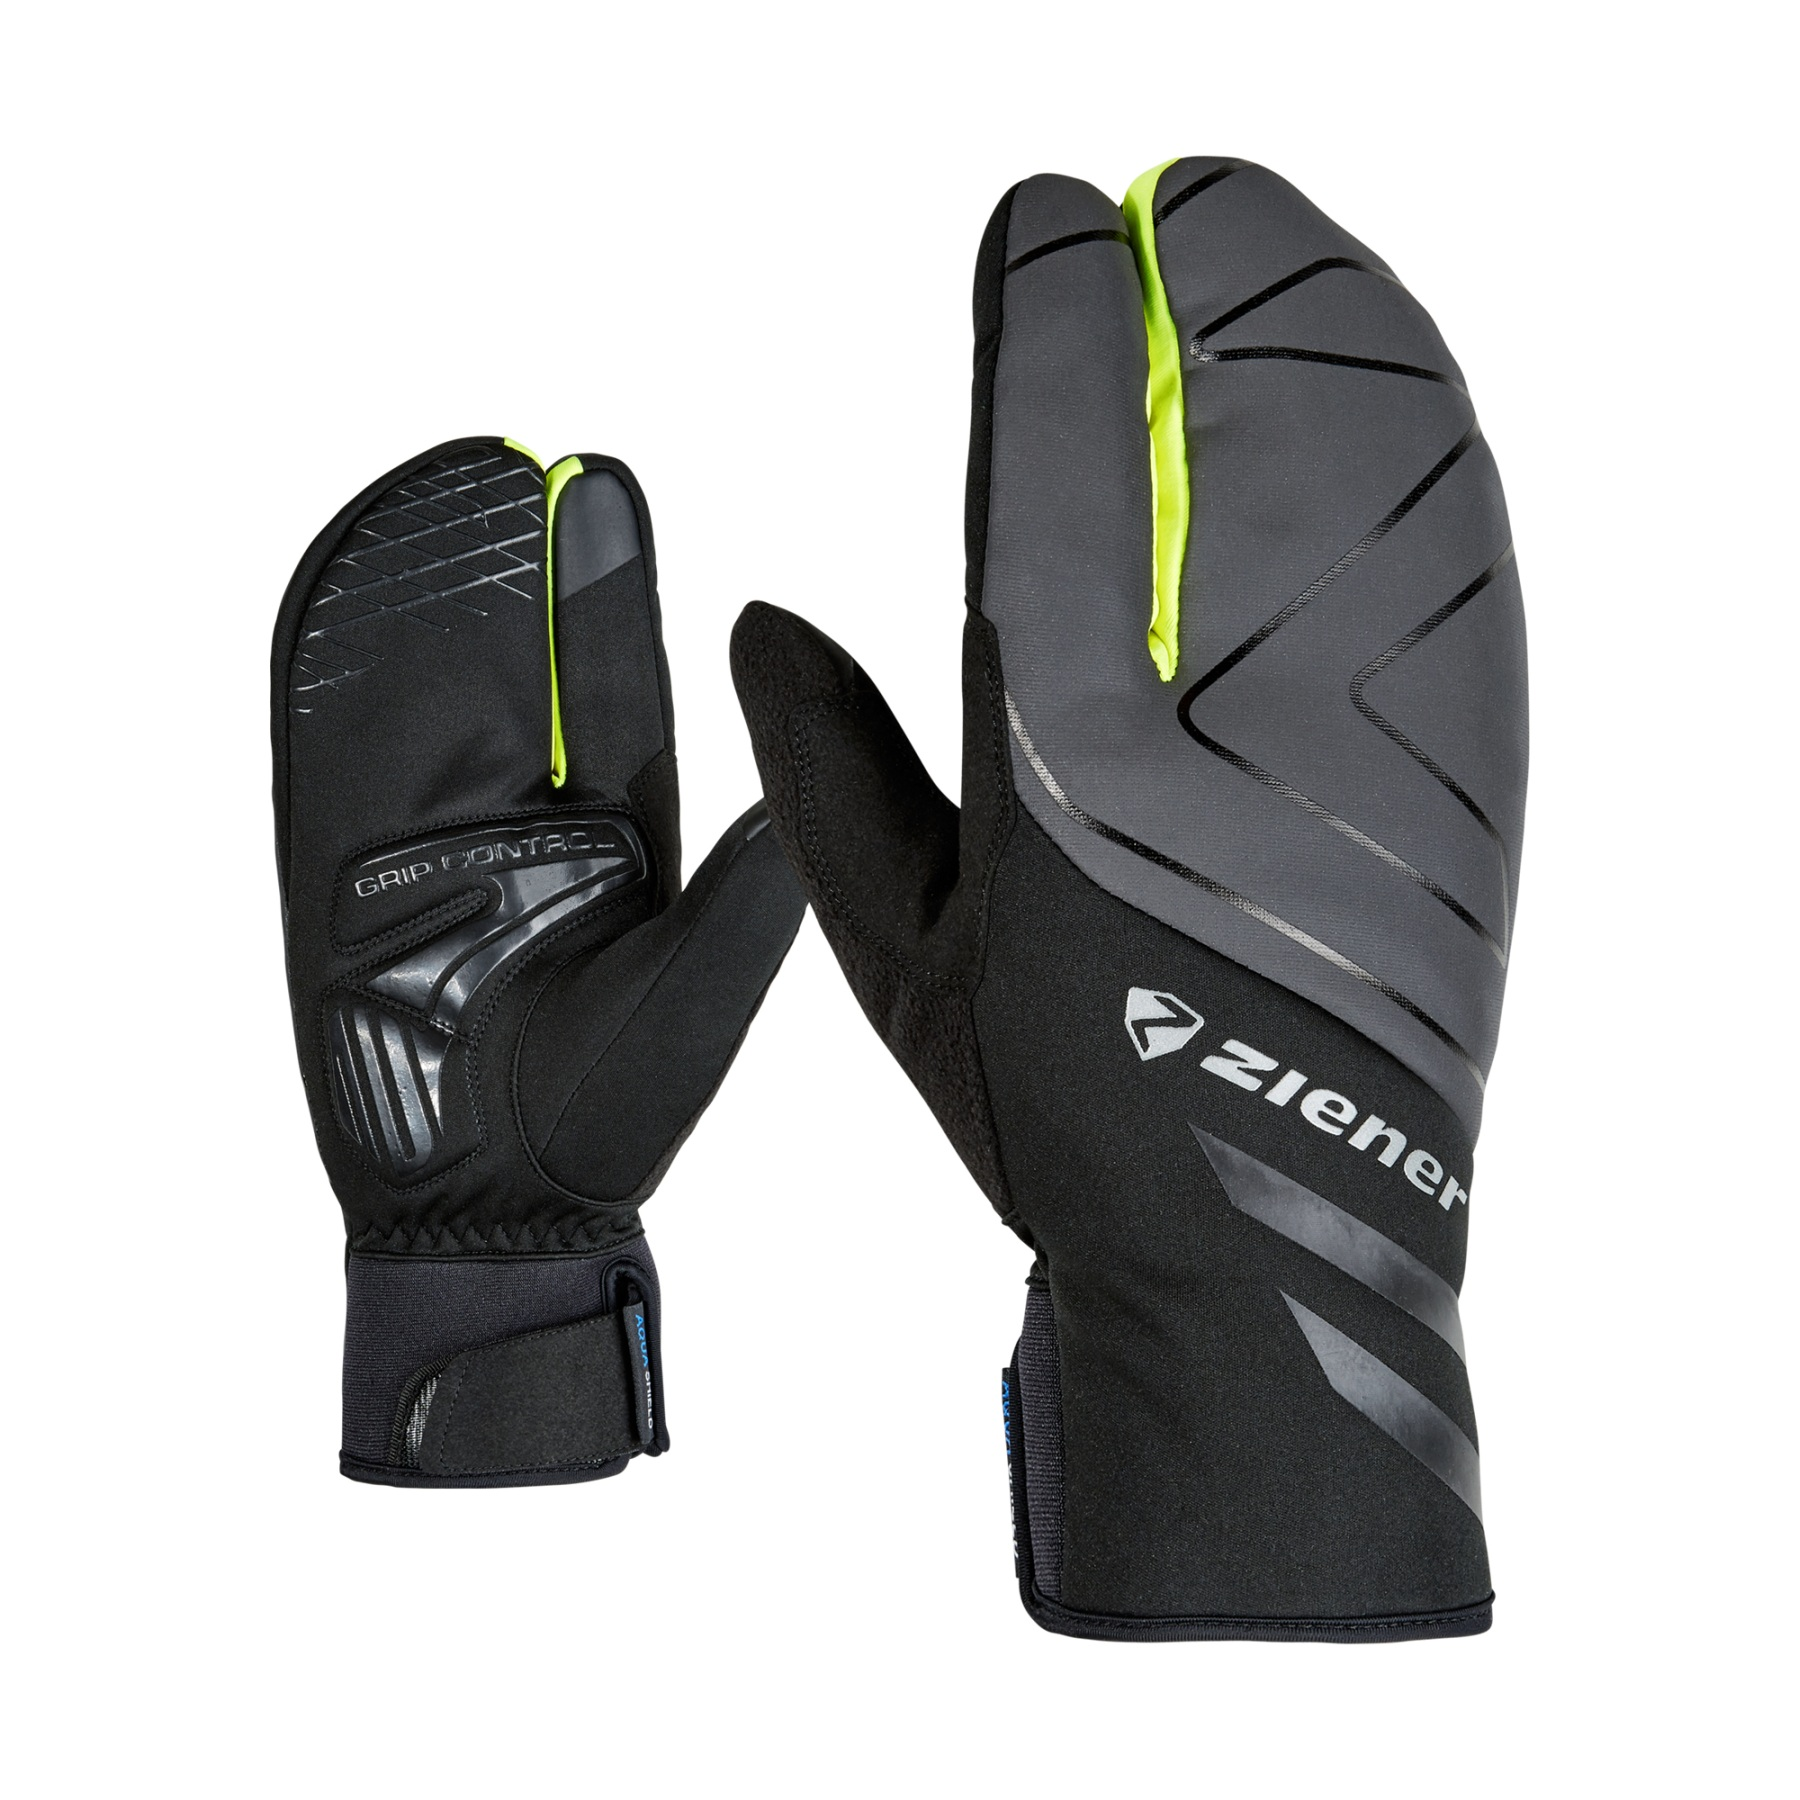 Image of Ziener Dalyo AS Touch Bike Gloves - poison yellow